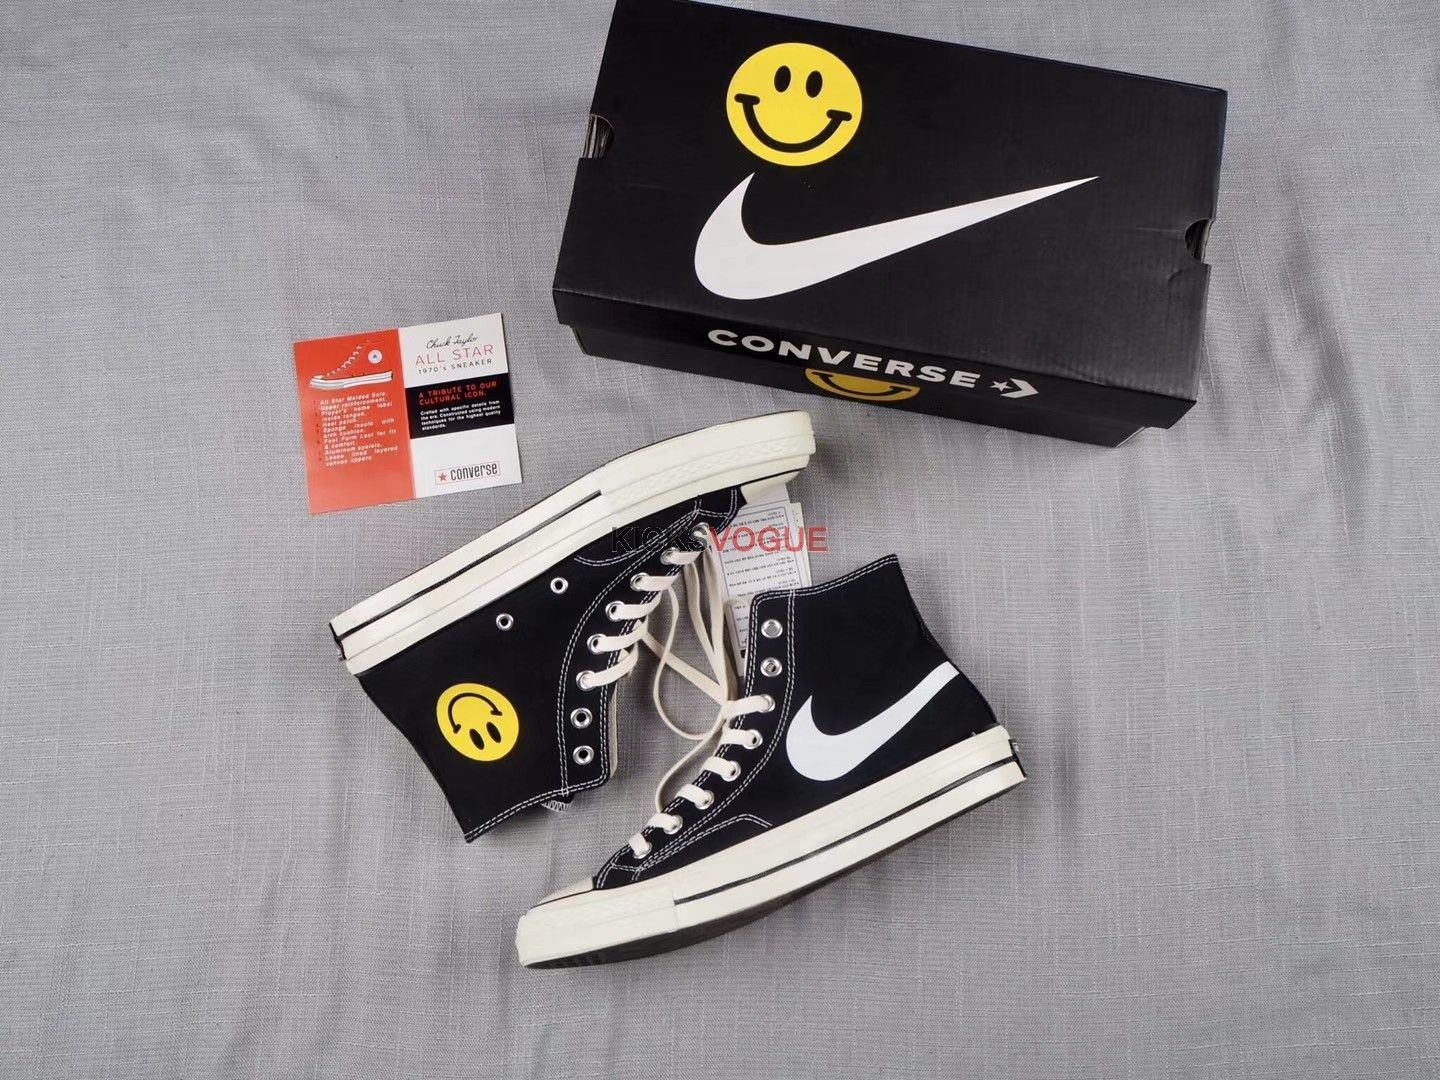 af2bbb255573 Converse Smiley Face Nike Swoosh 1970 s by Chinatown Market